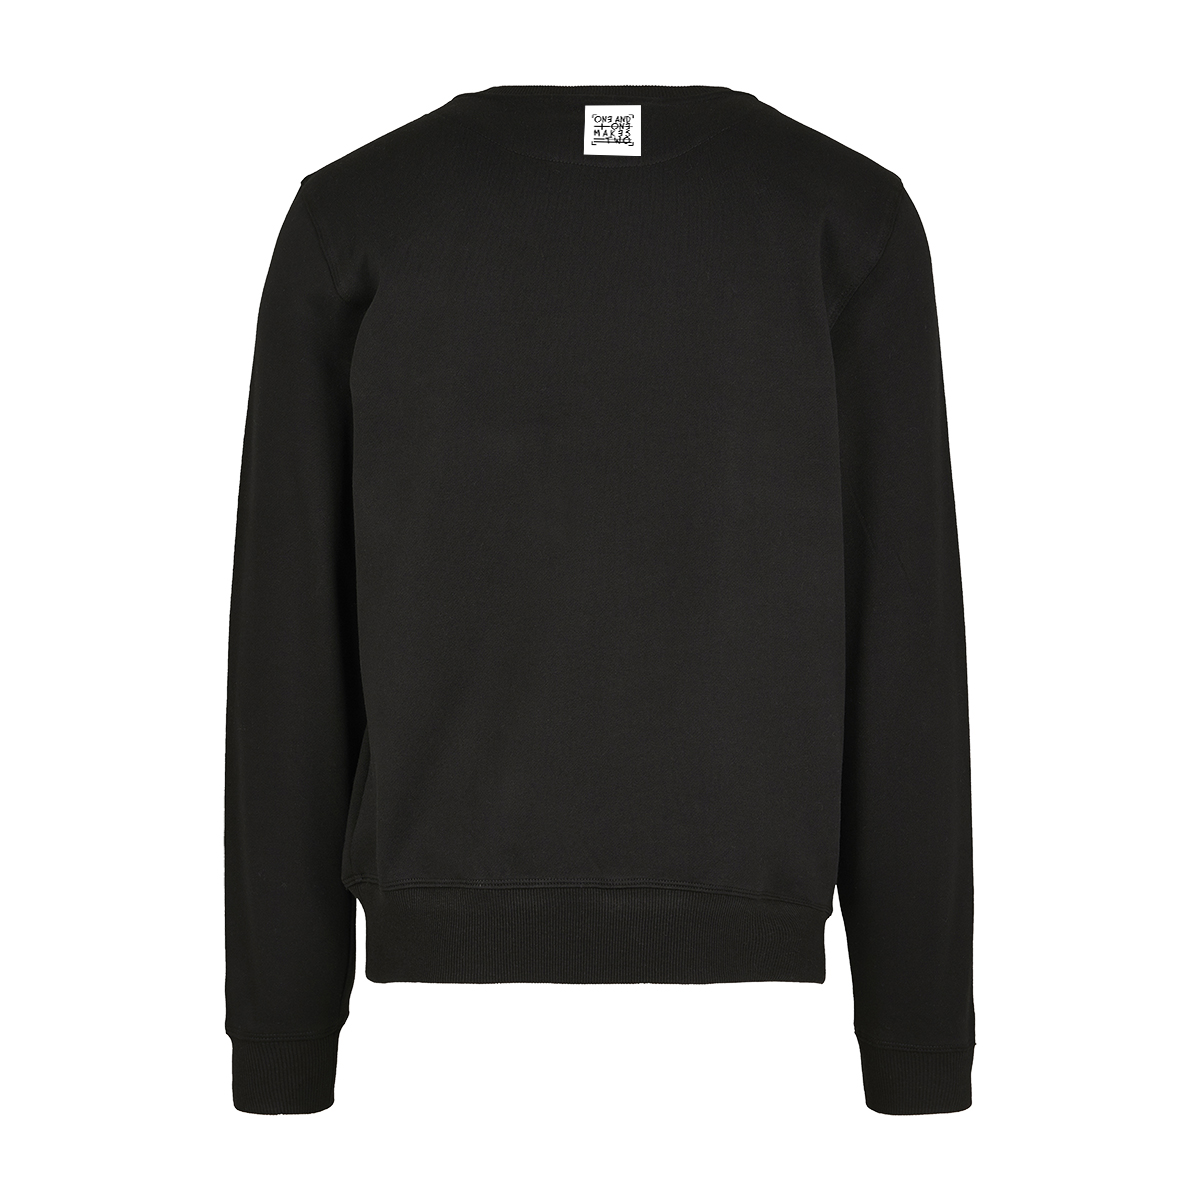 ONE AND ONE MAKES TWO - sweater - BLK back - Frank Willems